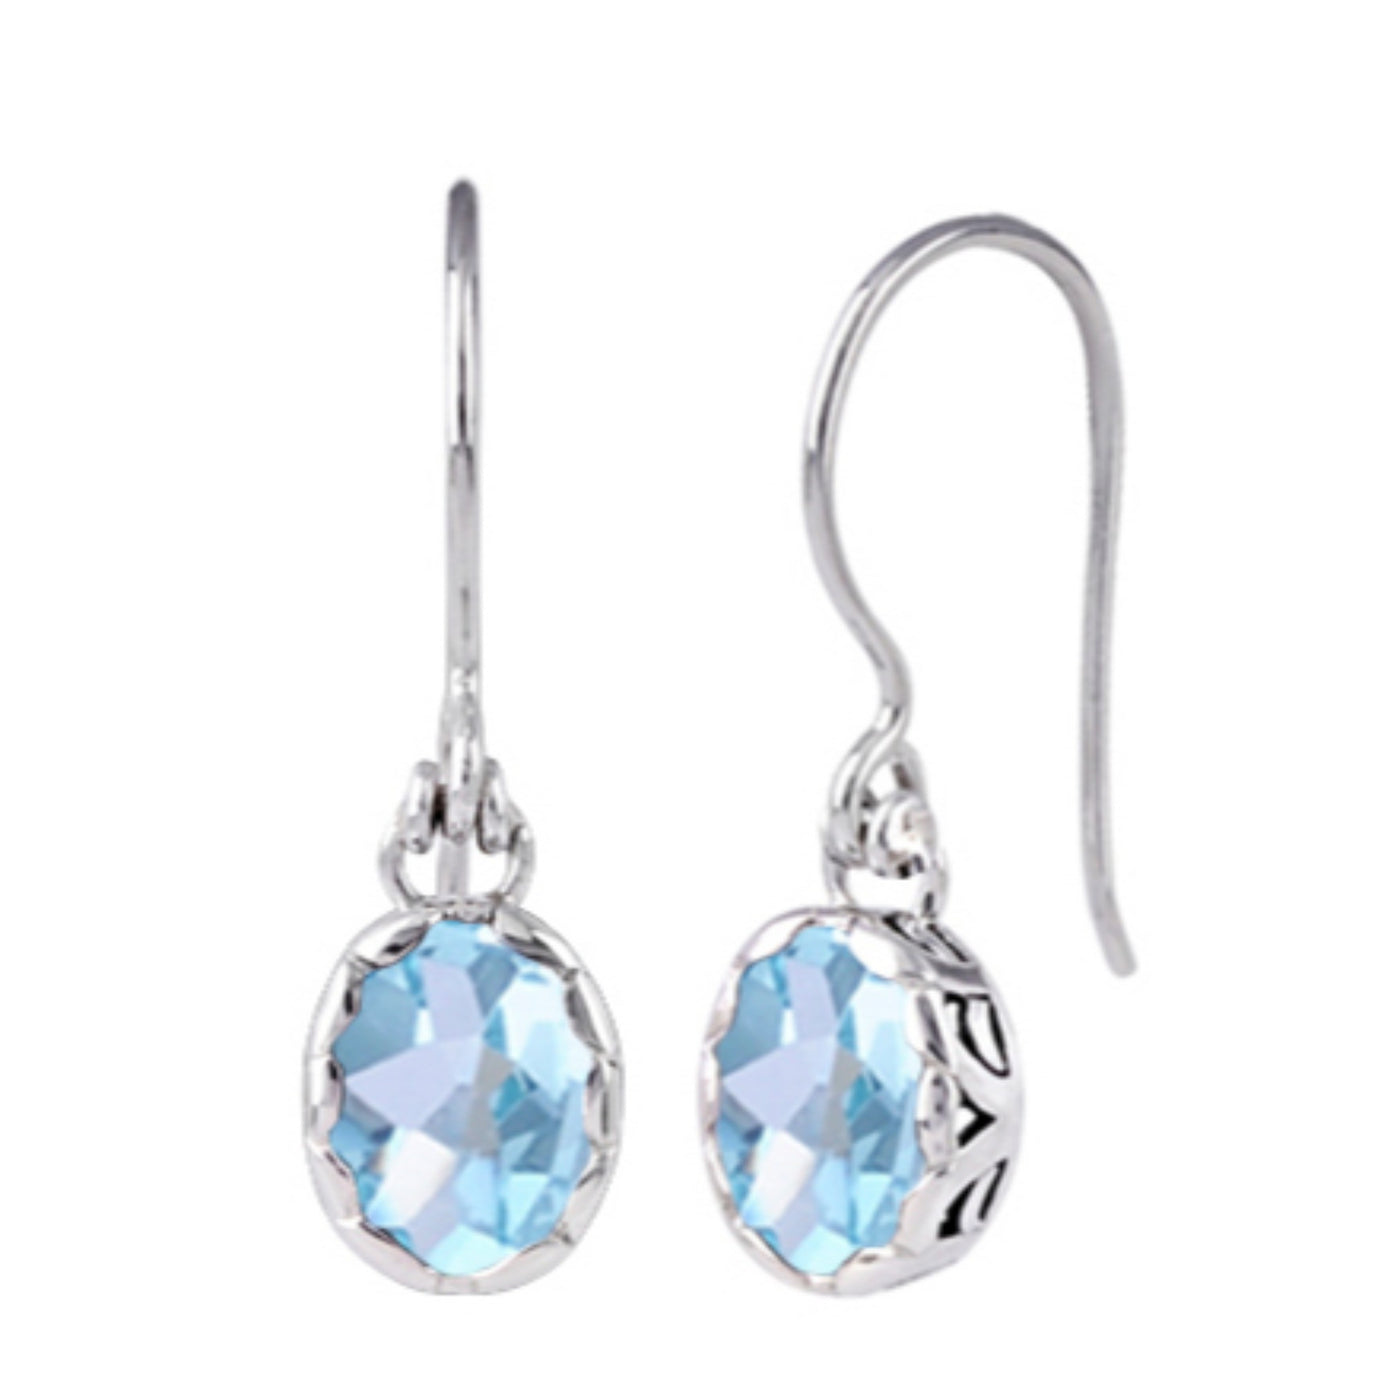 JD E70942BT BLUE TOPAZ OVAL DROP EARRINGS